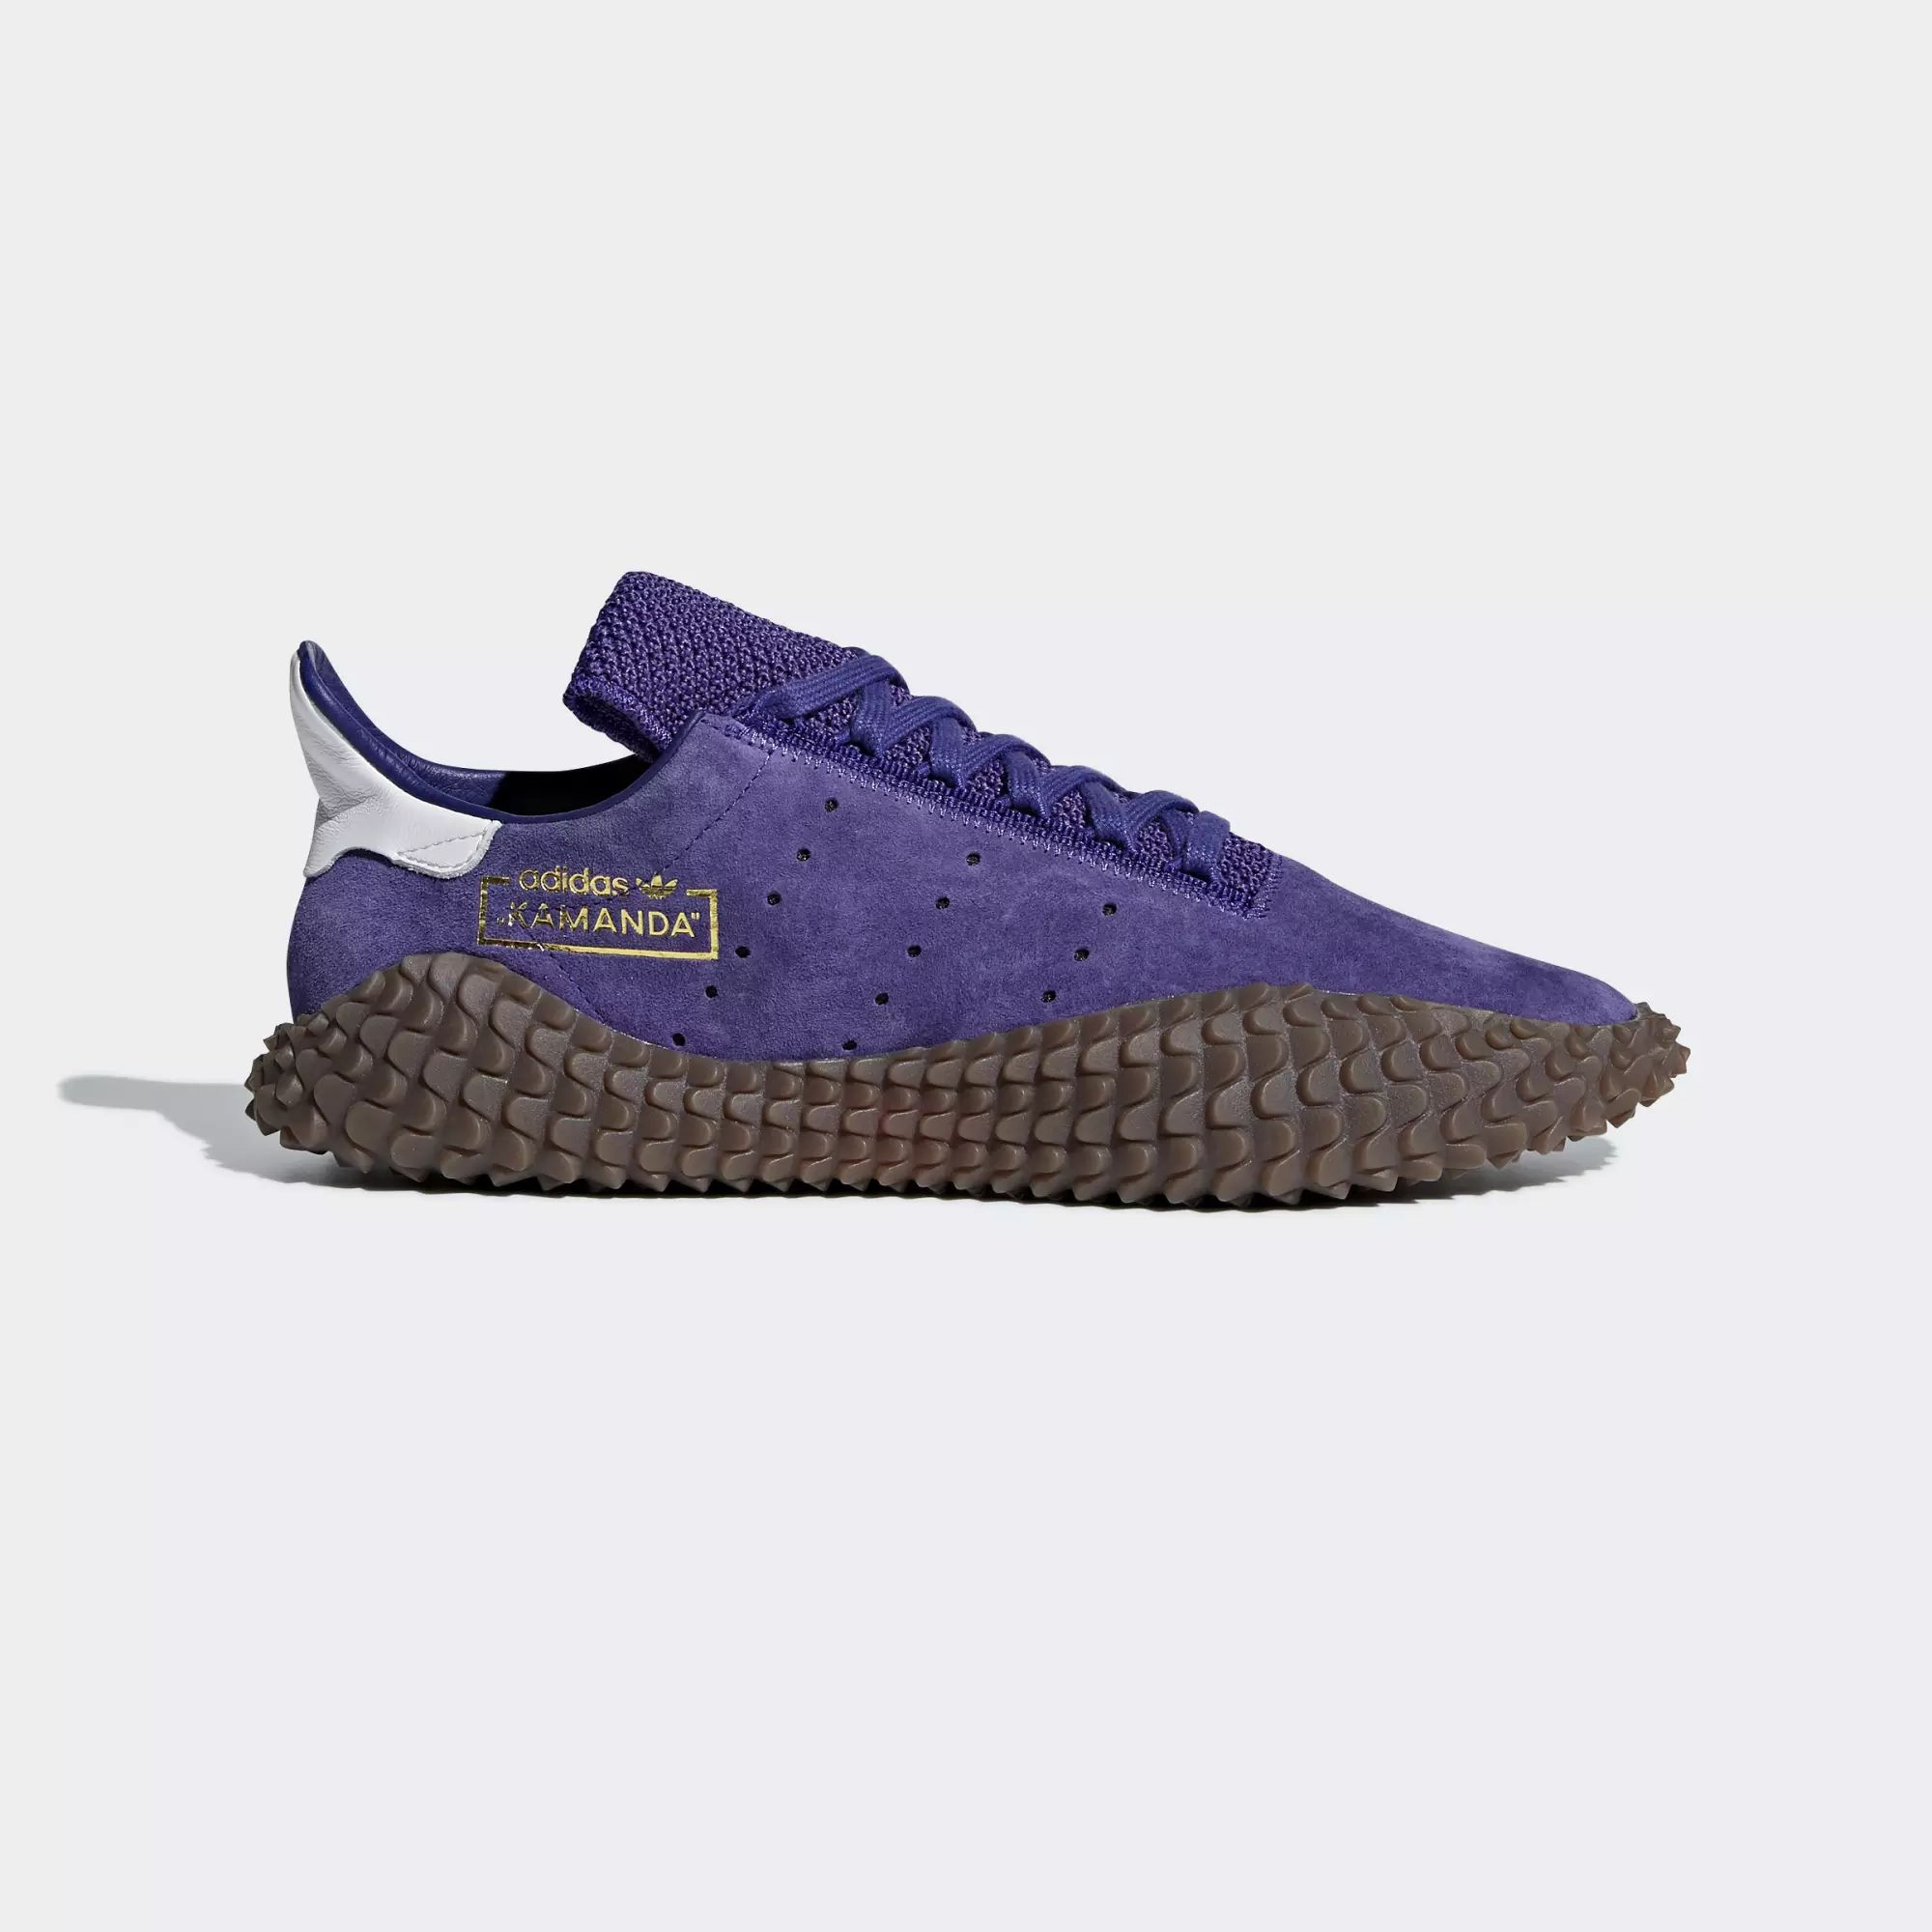 Adidas Kamanda 01 Shoes - Energy Ink / Energy Ink / Crystal White